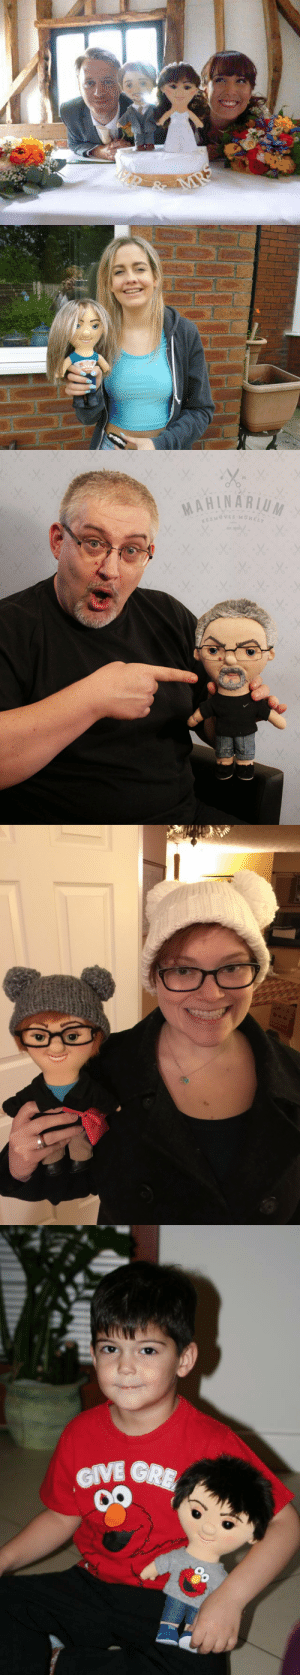 meme-mage:    Selfie doll - Mark, custom doll, character doll, rag doll, art doll, personalized doll   Have a custom made doll replica designed after you or your loved ones!Send me a few whole figure photos and a portrait of yourself, yourfriends, love or family and I will have you and them dollified! :)   https://goo.gl/cfKkZe : MRS   4400  adidas   MAHINARIUM  KEZMŰVES MUHELY  EST. 20u   GIVE GRE meme-mage:    Selfie doll - Mark, custom doll, character doll, rag doll, art doll, personalized doll   Have a custom made doll replica designed after you or your loved ones!Send me a few whole figure photos and a portrait of yourself, yourfriends, love or family and I will have you and them dollified! :)   https://goo.gl/cfKkZe